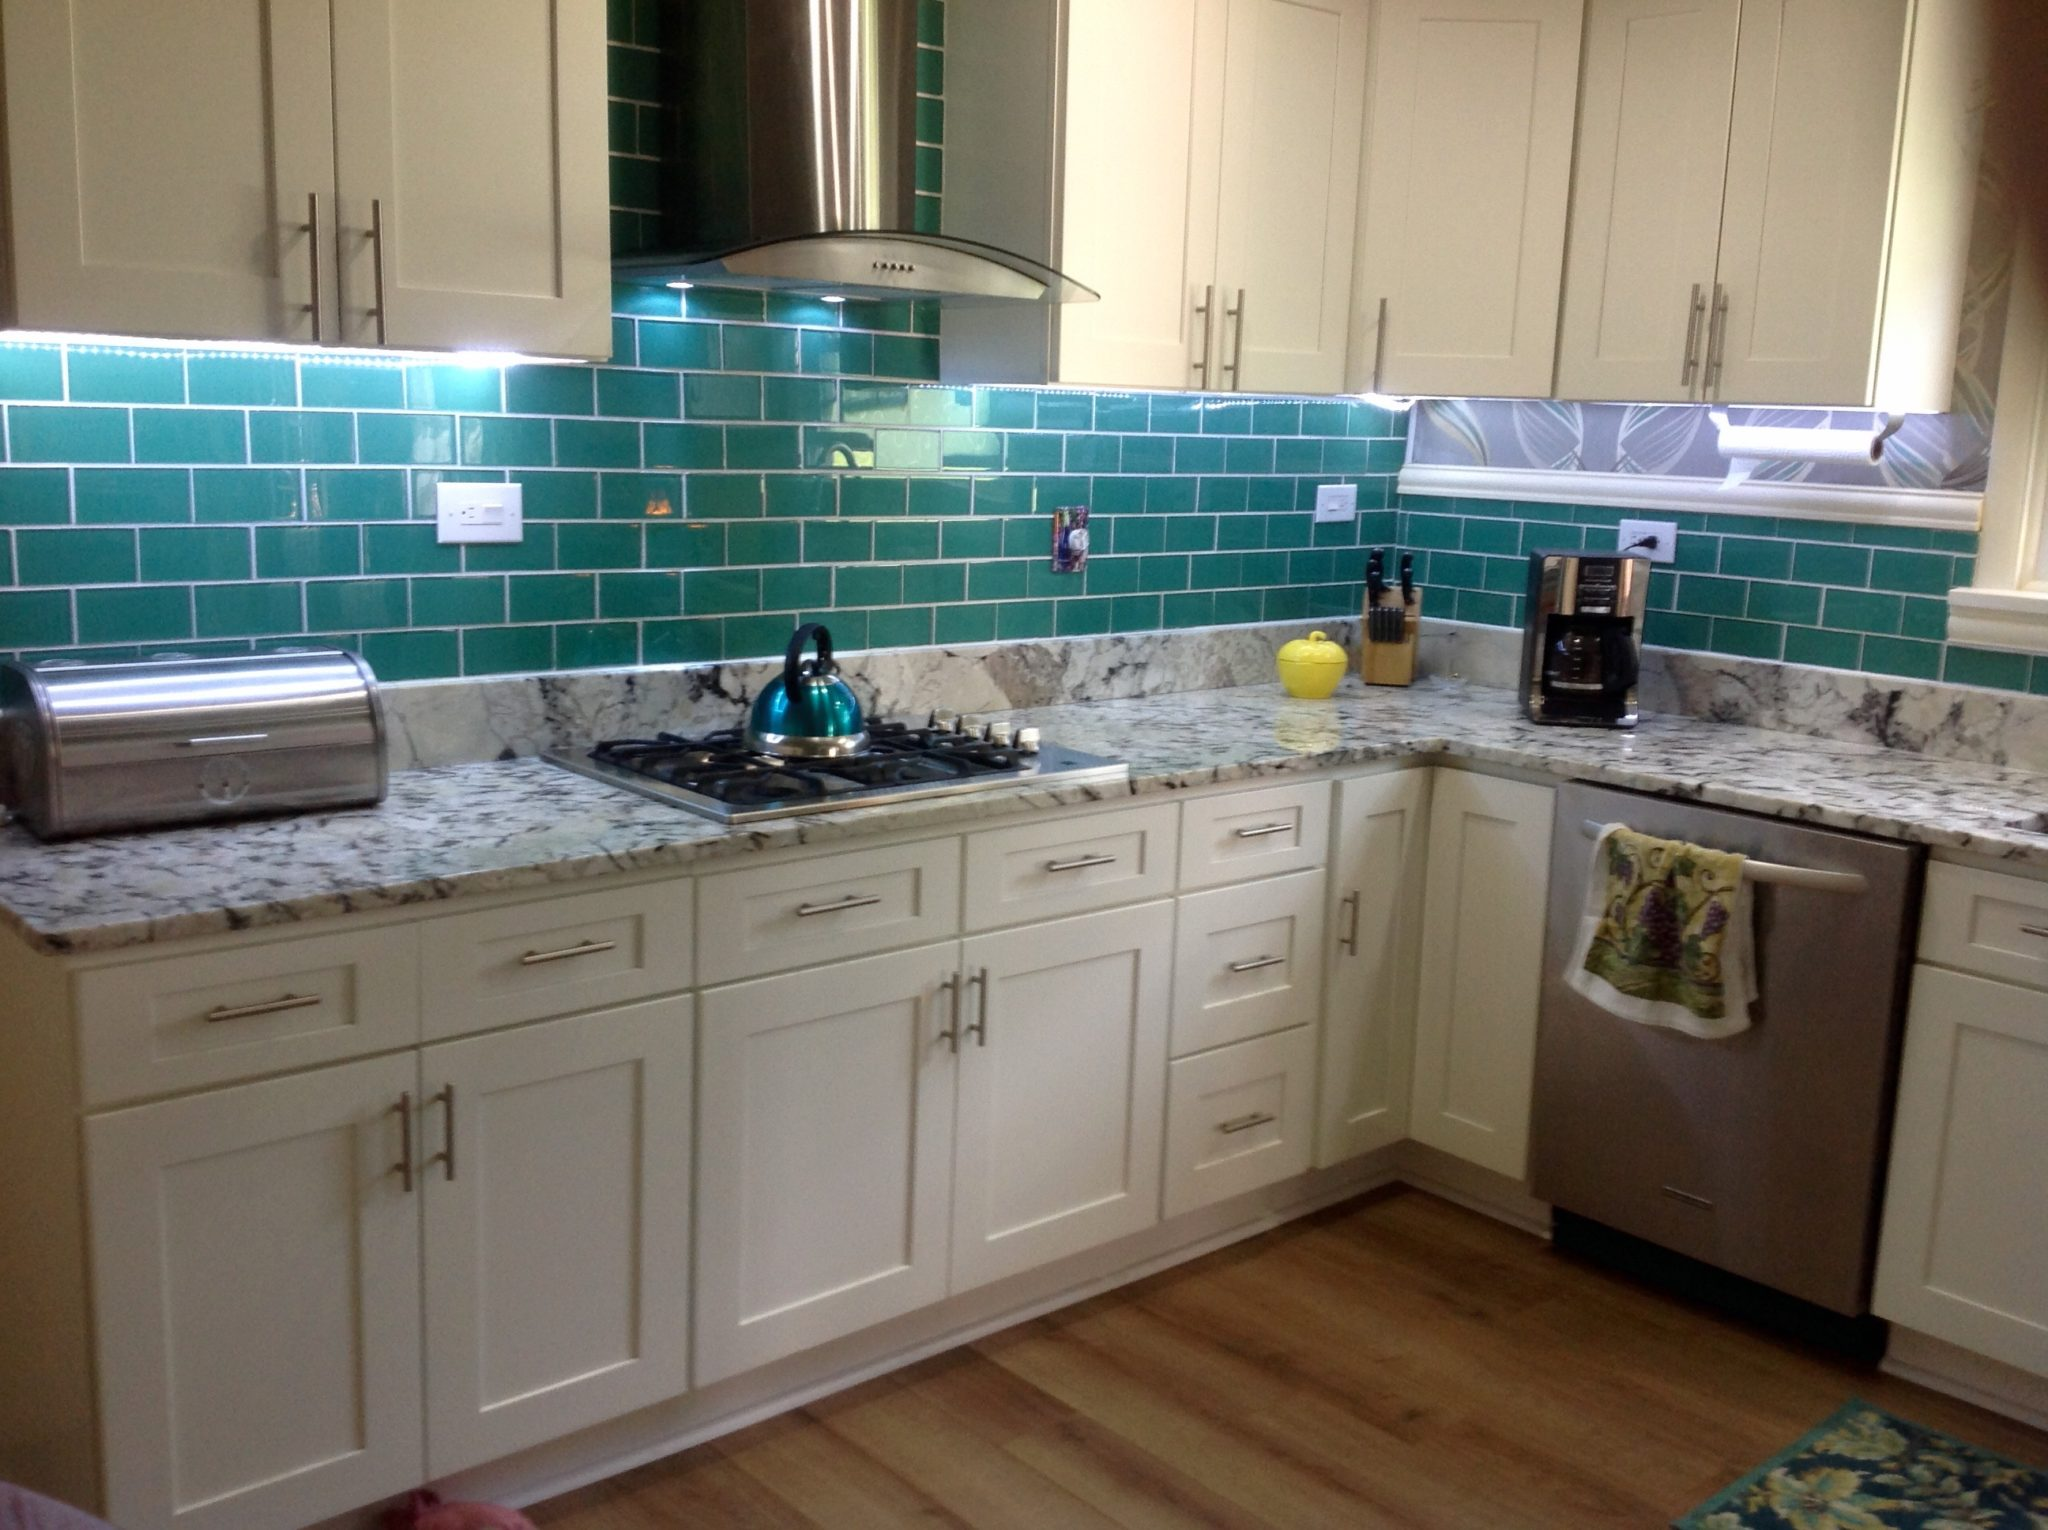 7 different ways to use subway tiles in your home - Reno Addict